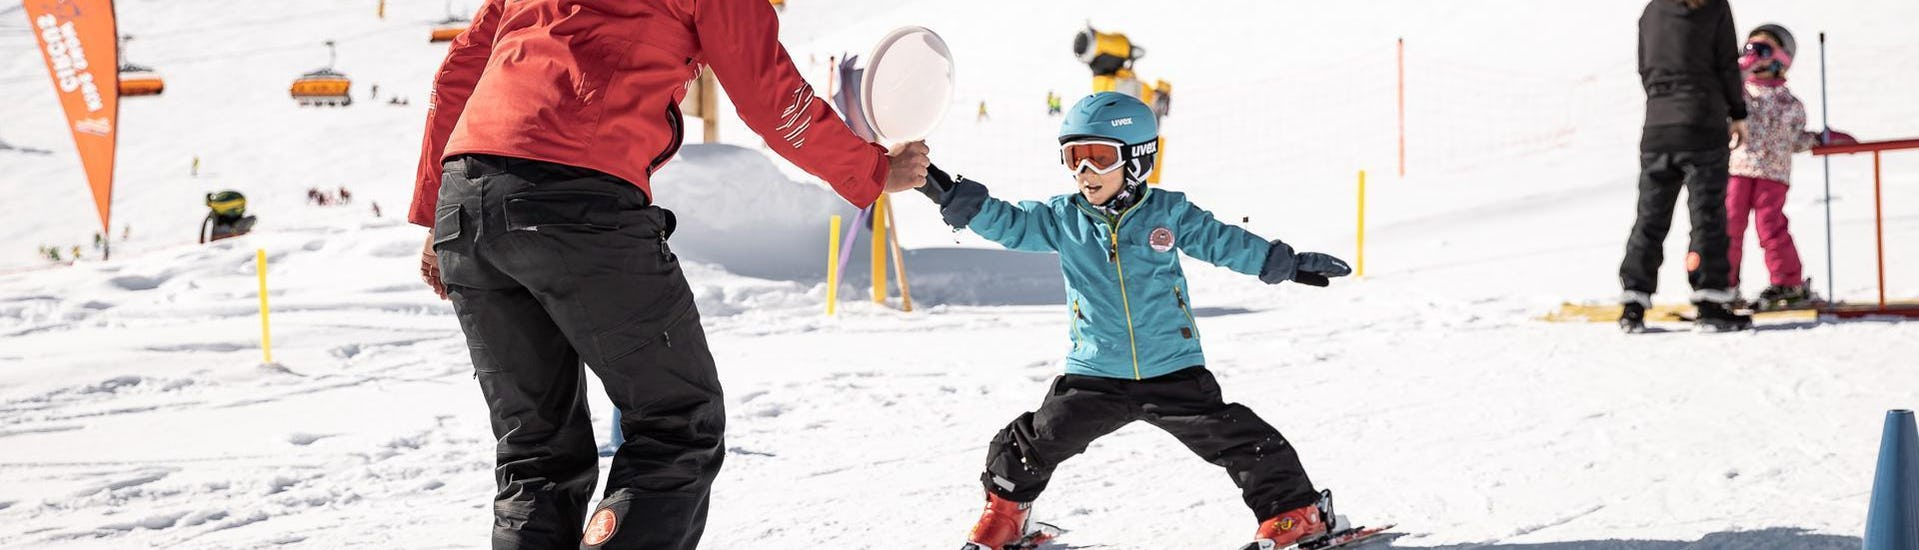 A young child is mastering their first steps on skis during the Kids Ski Lessons (3-4 years) - First Timer with an experienced instructor from Ski & Snowboardschool Vacancia.